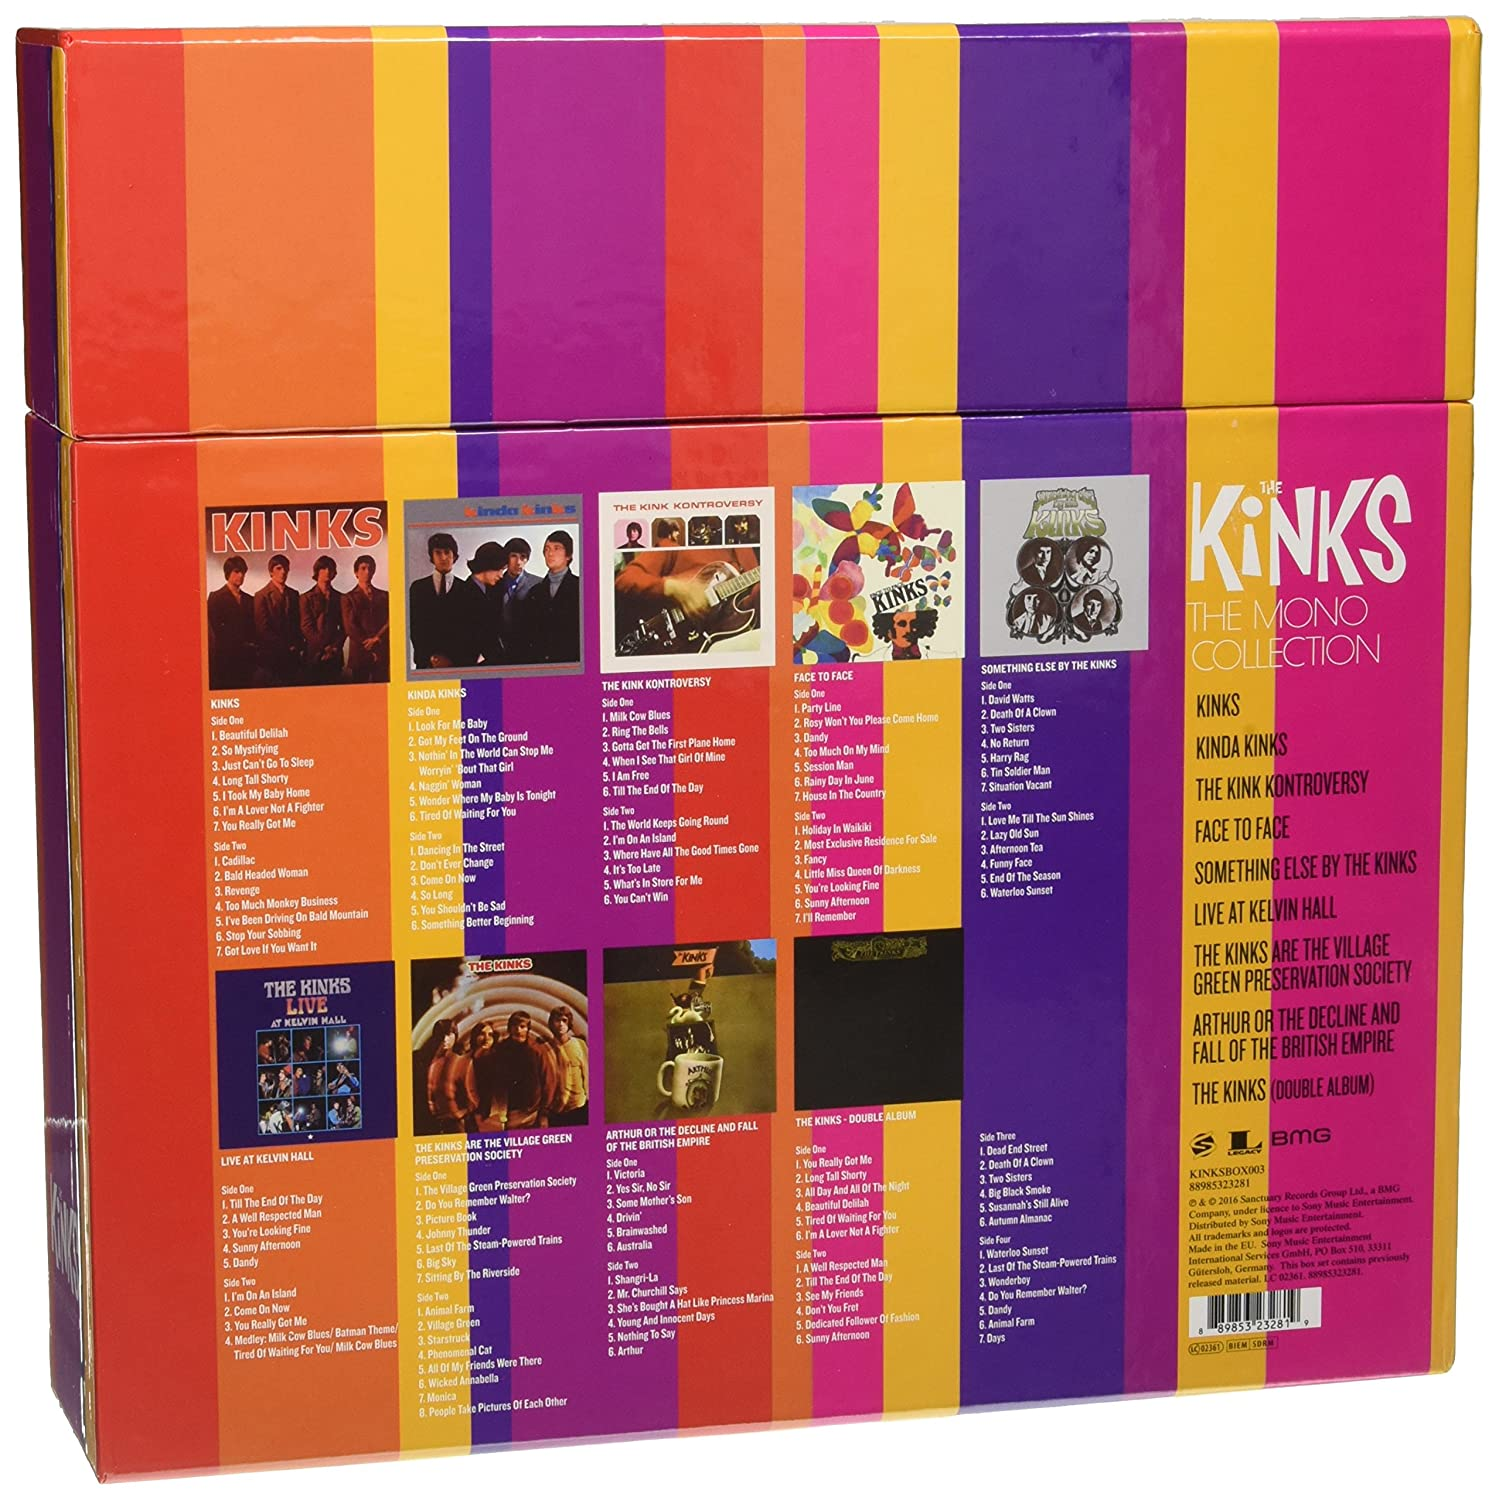 The Kinks - The Mono Collection (Limited Edition 1ecde1cfe